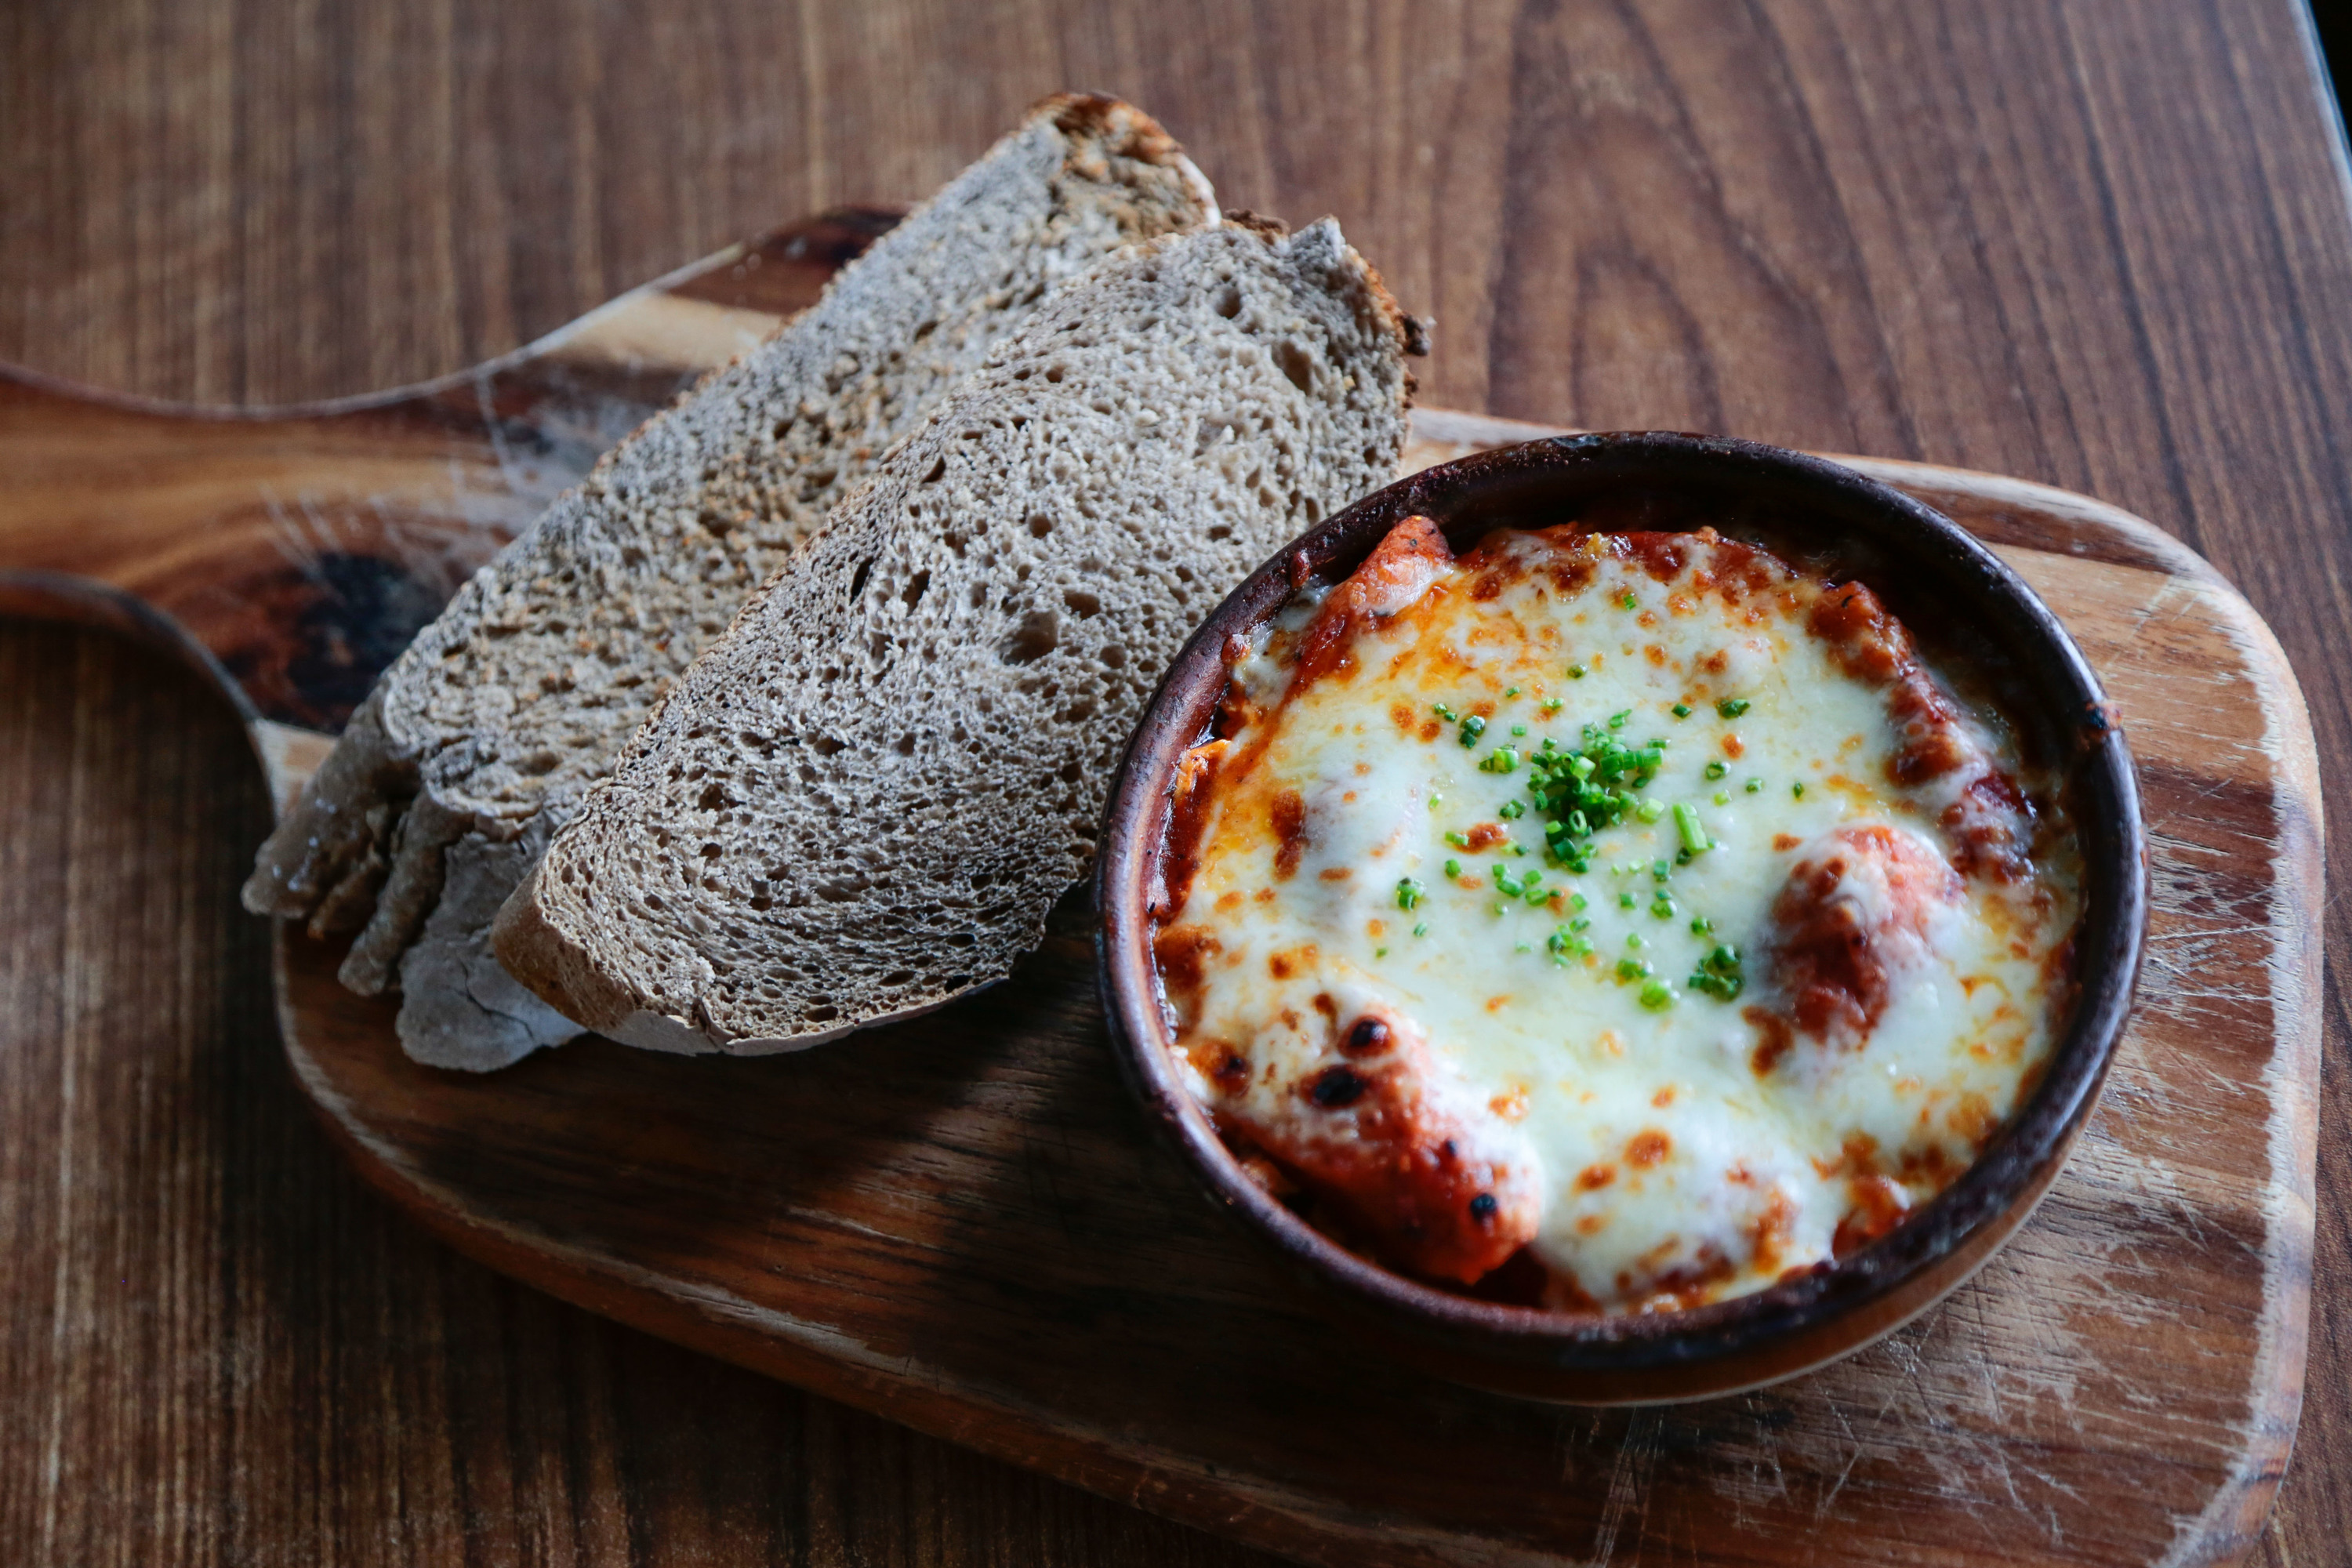 Baked eggs at The Red Beanbag